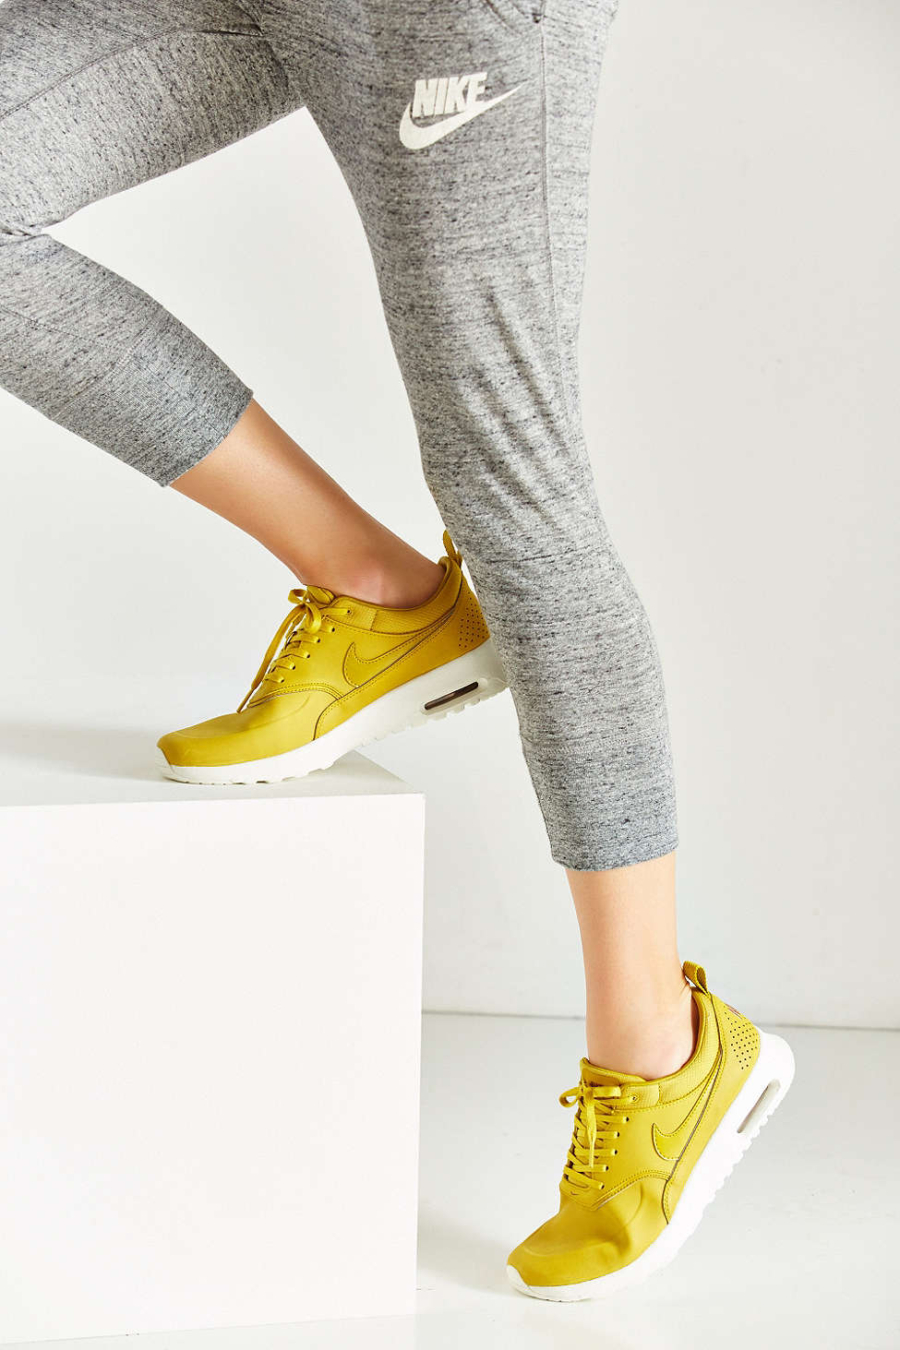 Work Out Sneakers - 7 Activewear Pieces That Can Change Your Attitude About Hitting The Gym // Notjessfashion.com